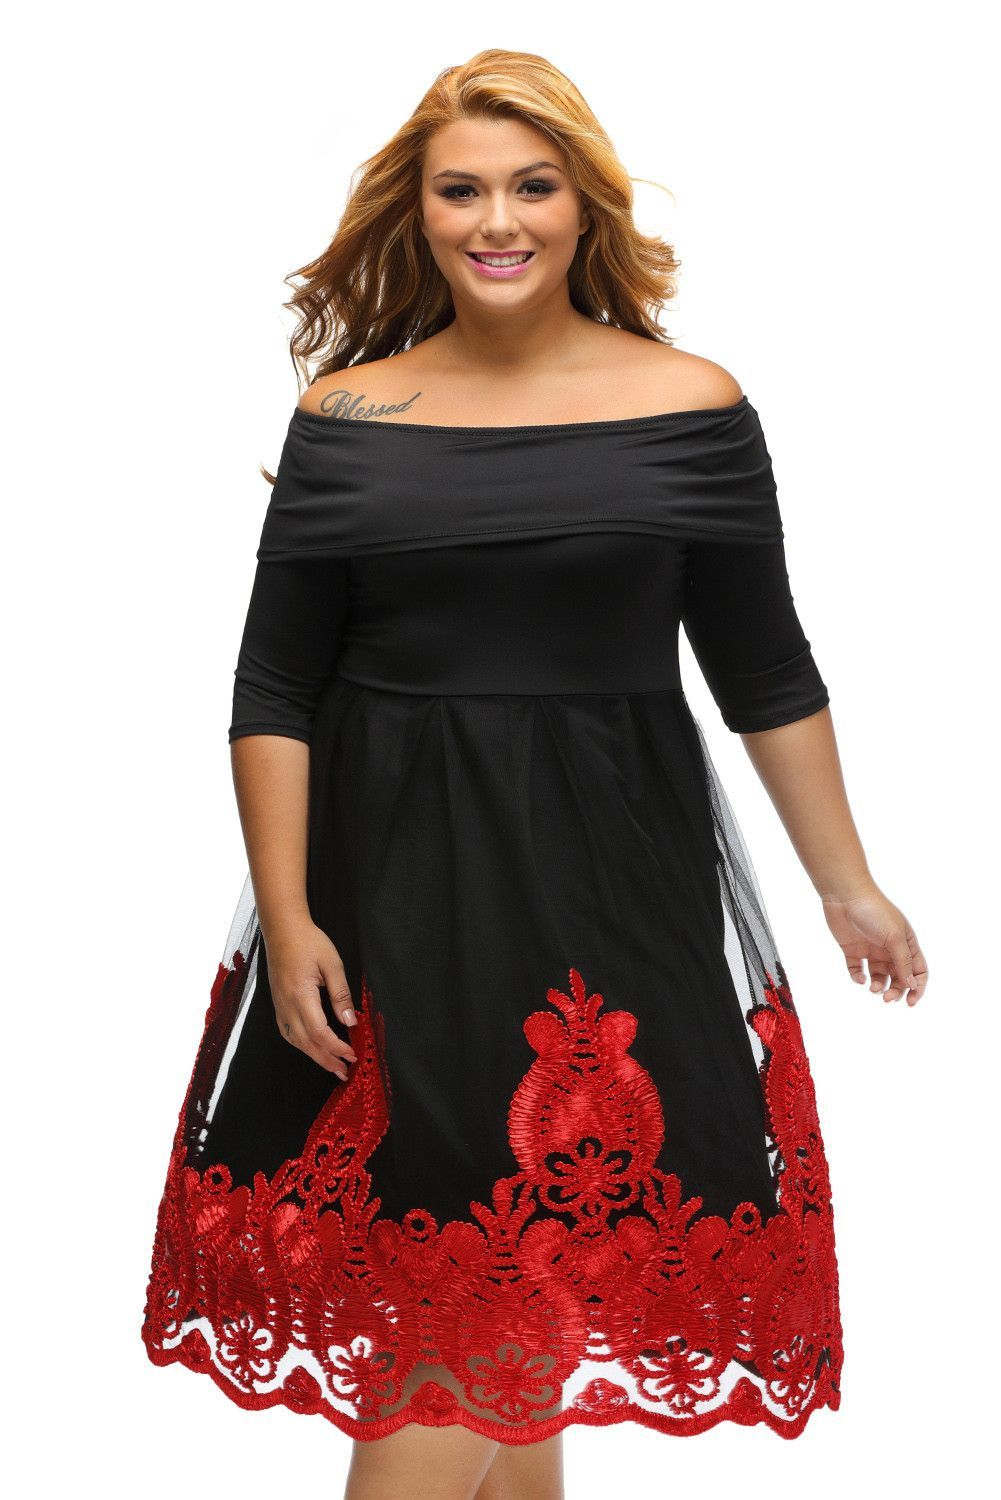 b14f5ddb05f Robes Patineuse Grandes Tailles Curvy Rouge Broderie Dentelle Tulle Jupe Pas  Cher www.modebuy.com  Modebuy  Modebuy  Noir  Jaune  mode  femmes